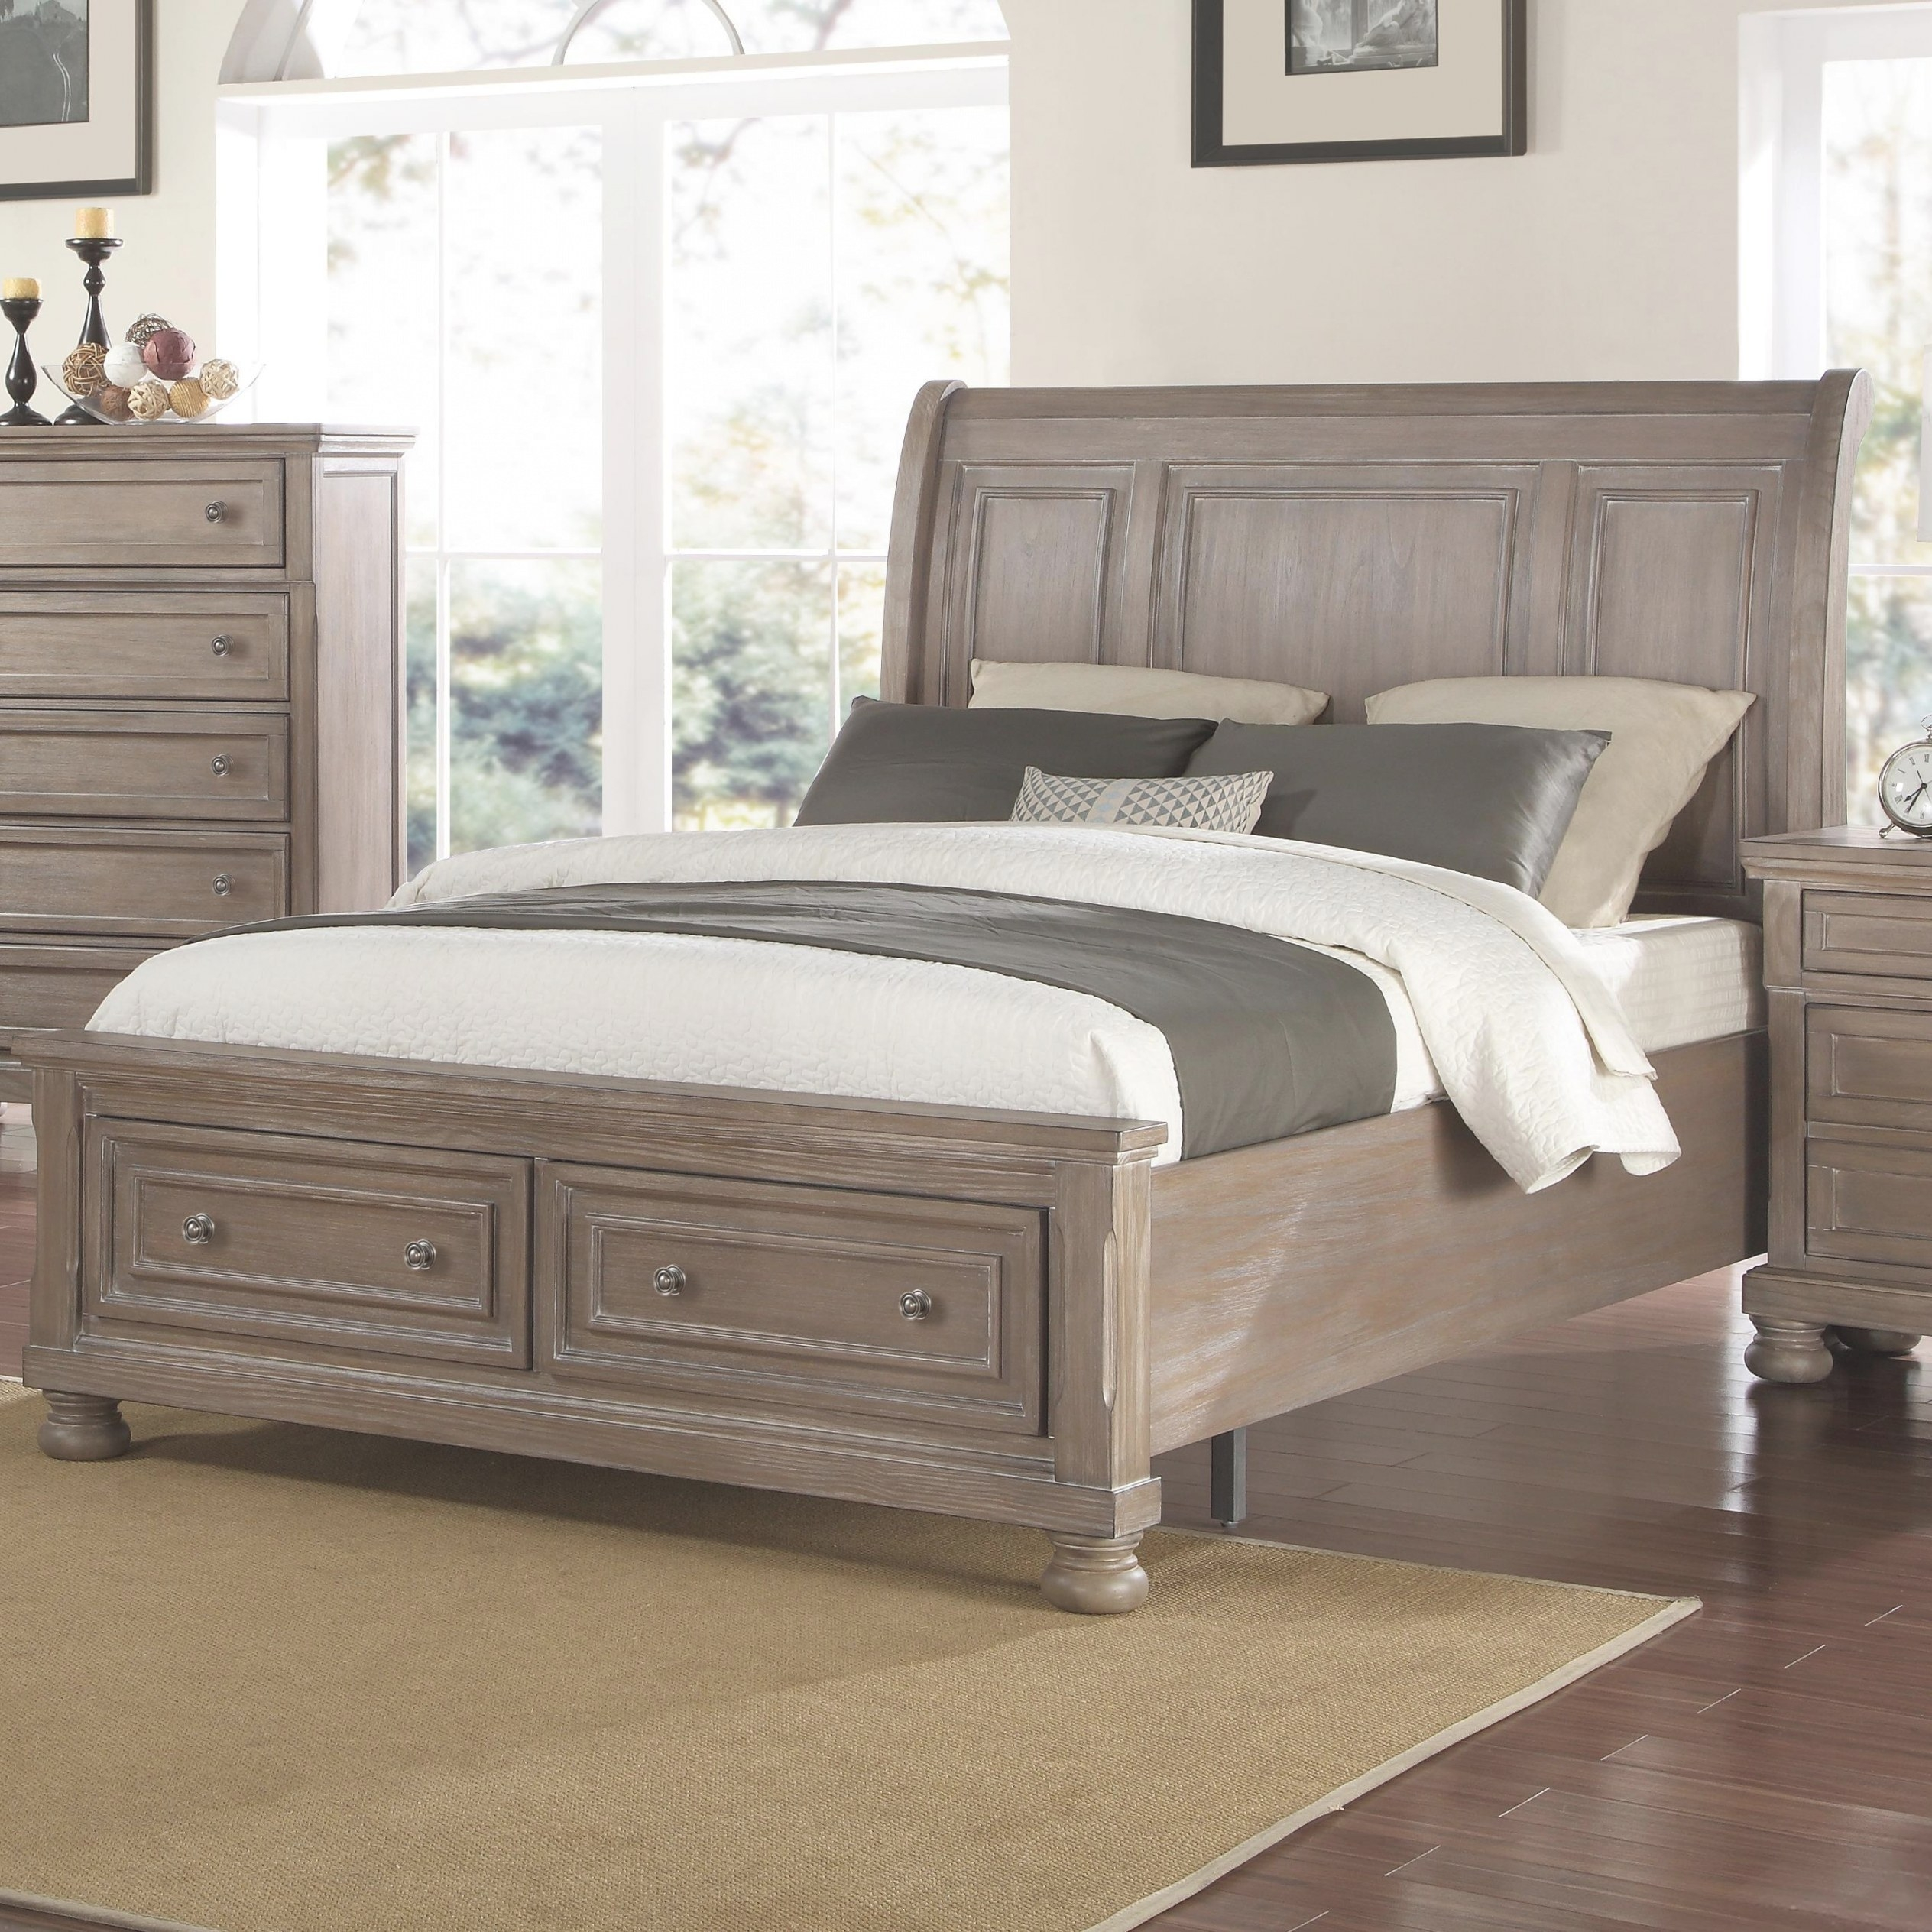 New Classic Allegra King Low Profile Bed With Footboard inside Low Profile Bunk Beds